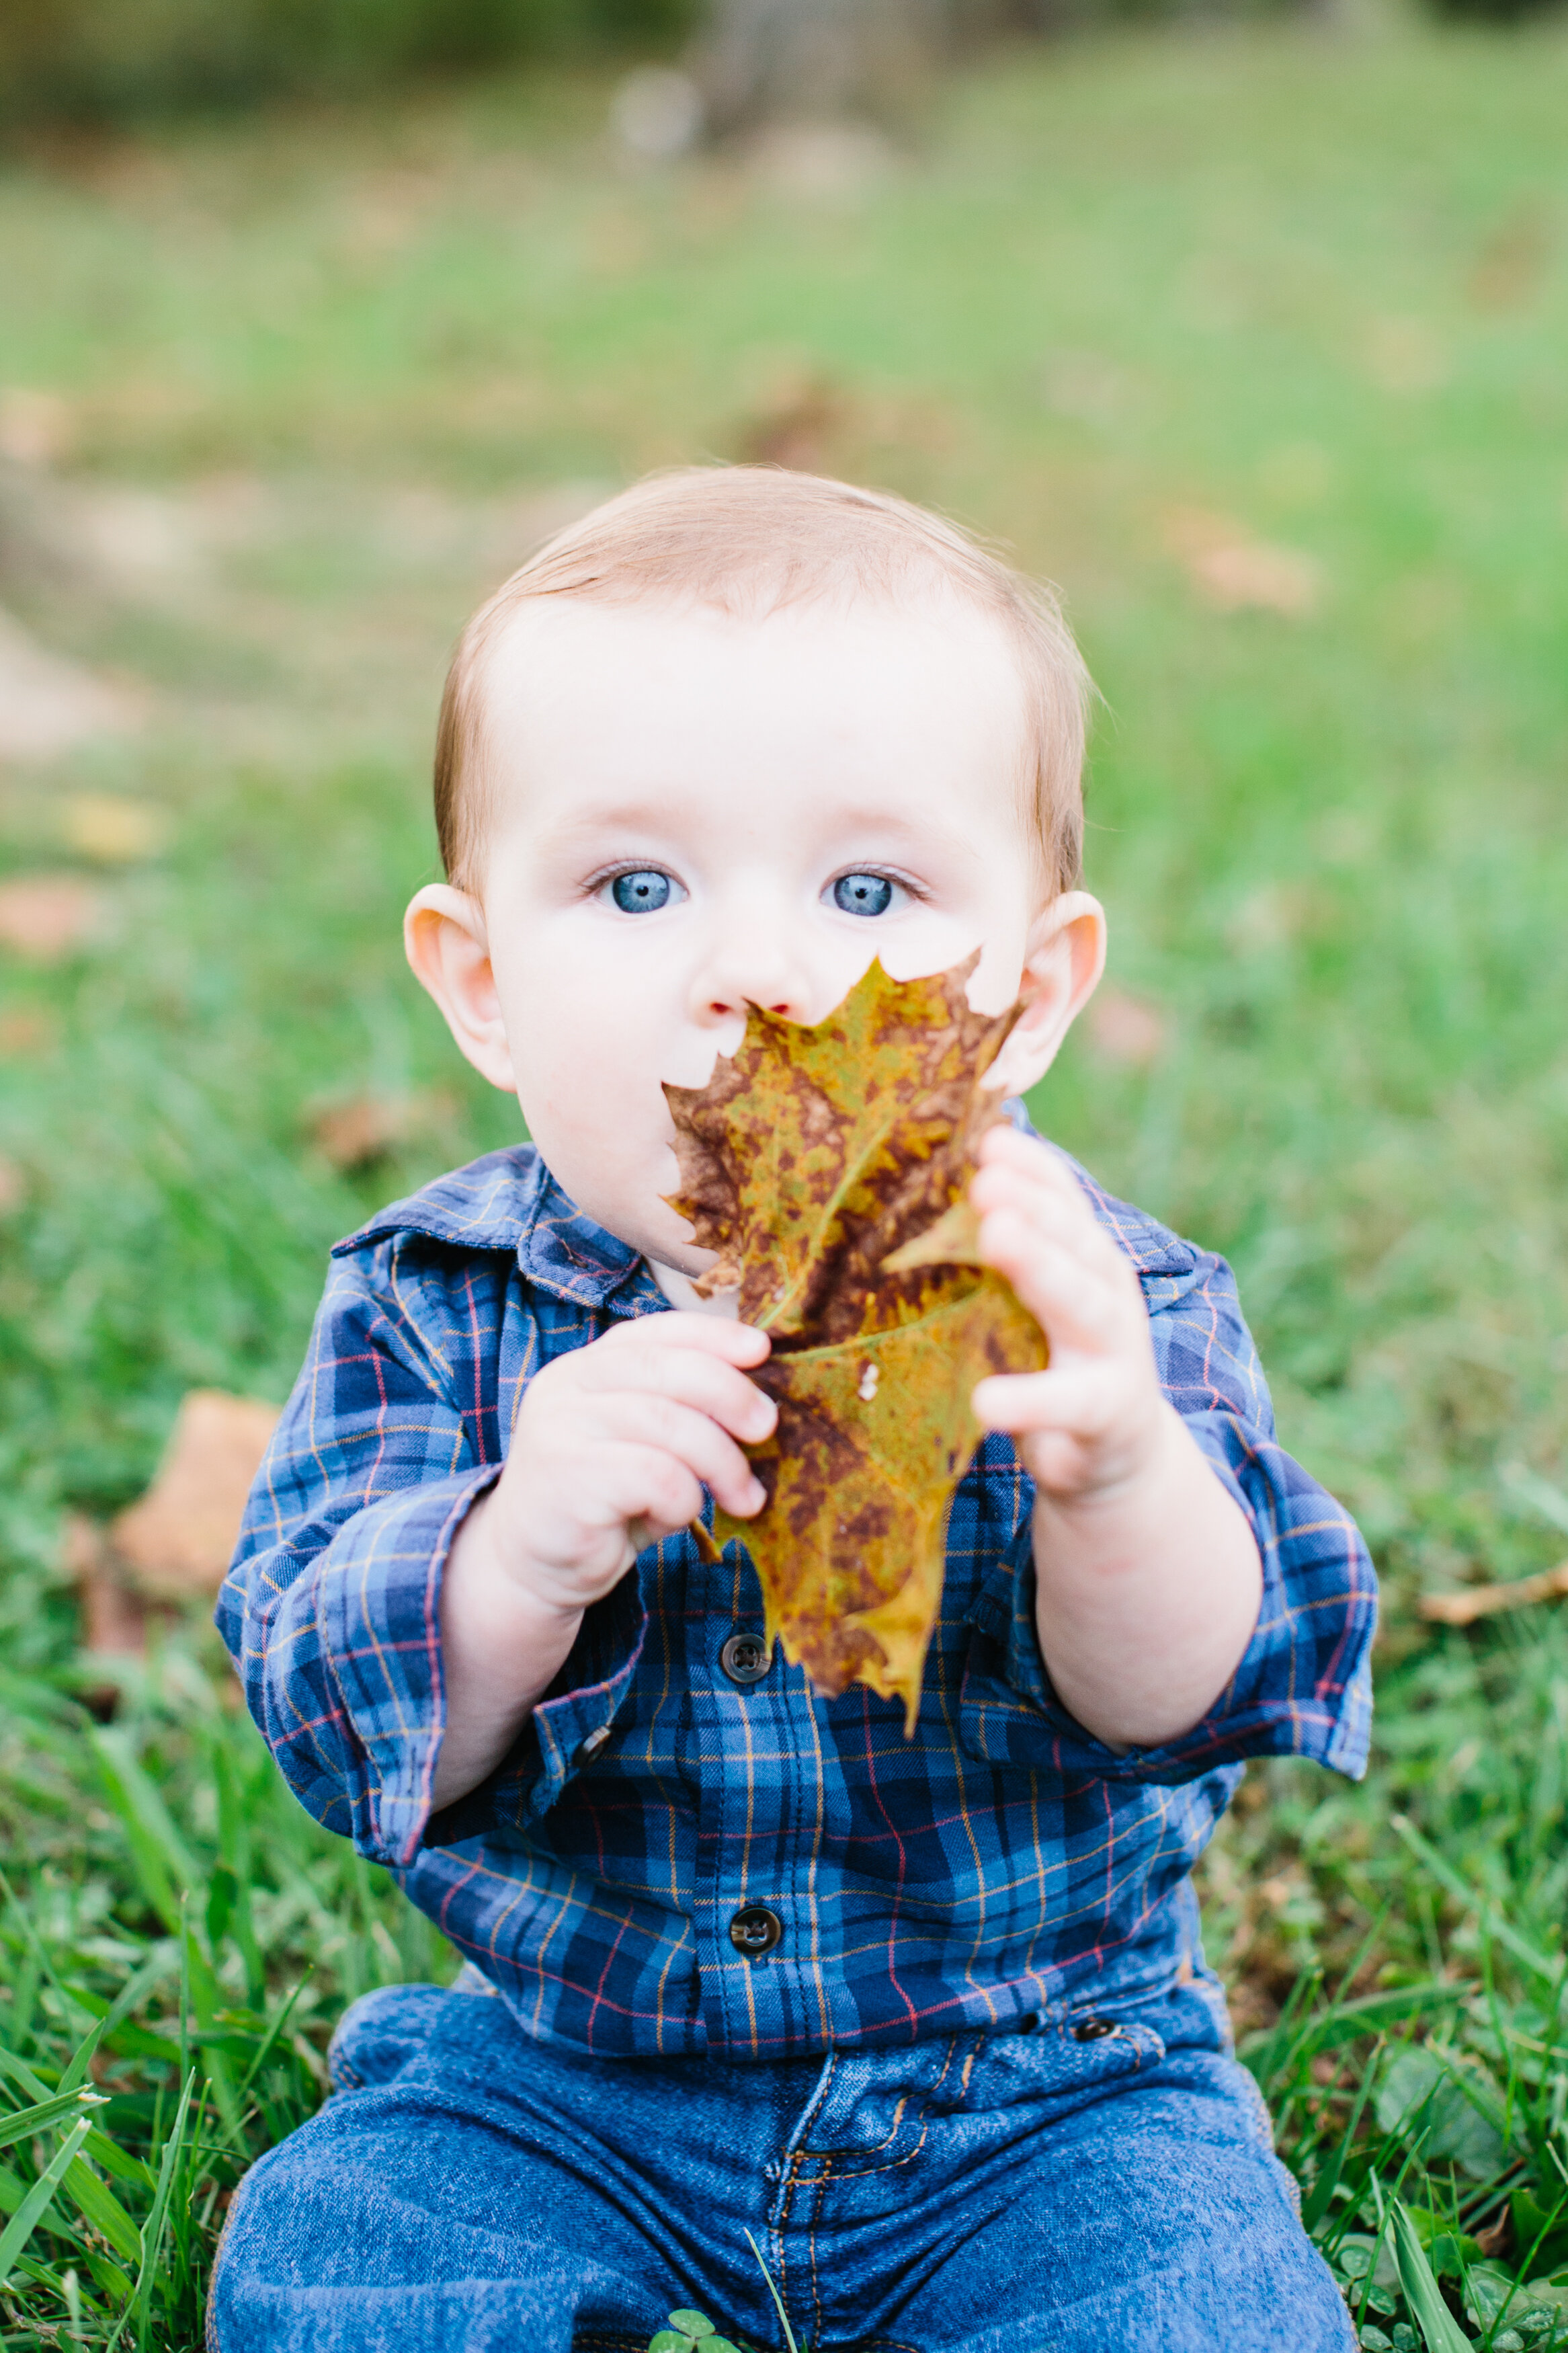 Raleigh_7months_Abigail_Malone_Photography-38.jpg